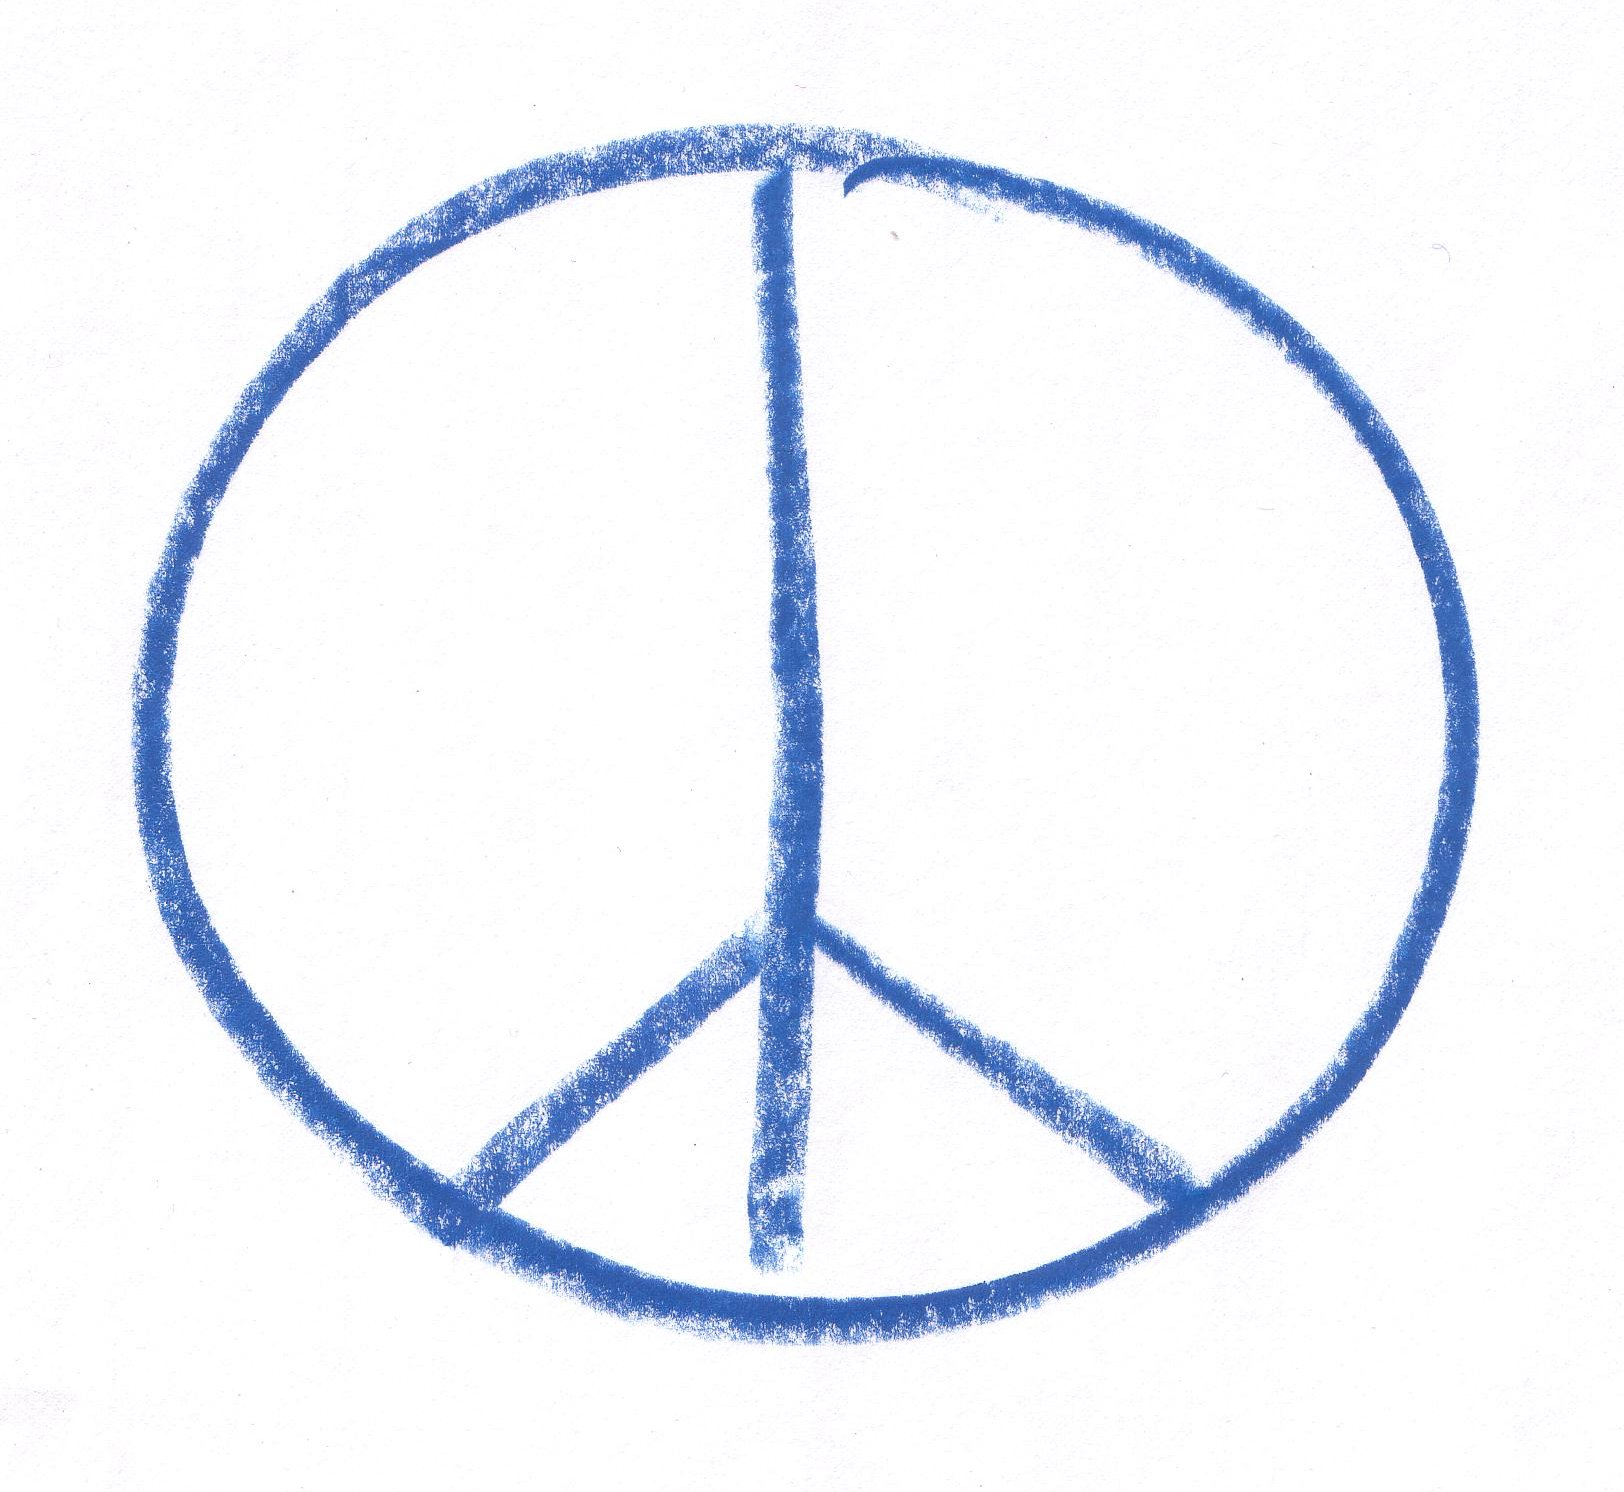 essay about peace day